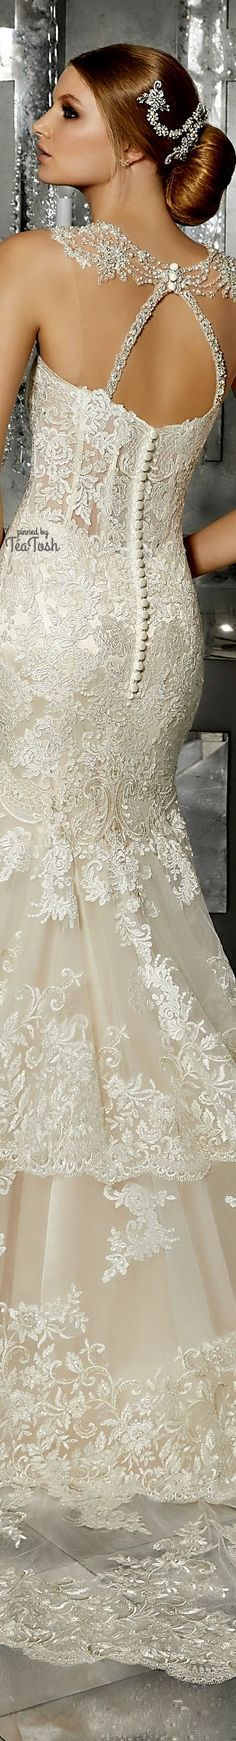 ❇Téa Tosh❇ (Back) Martella Wedding Dress Older Bride, Weeding Dress, Mori Lee, I Got Married, White Outfits, White Lace, Bridal Gowns, Backless, Dress Ideas